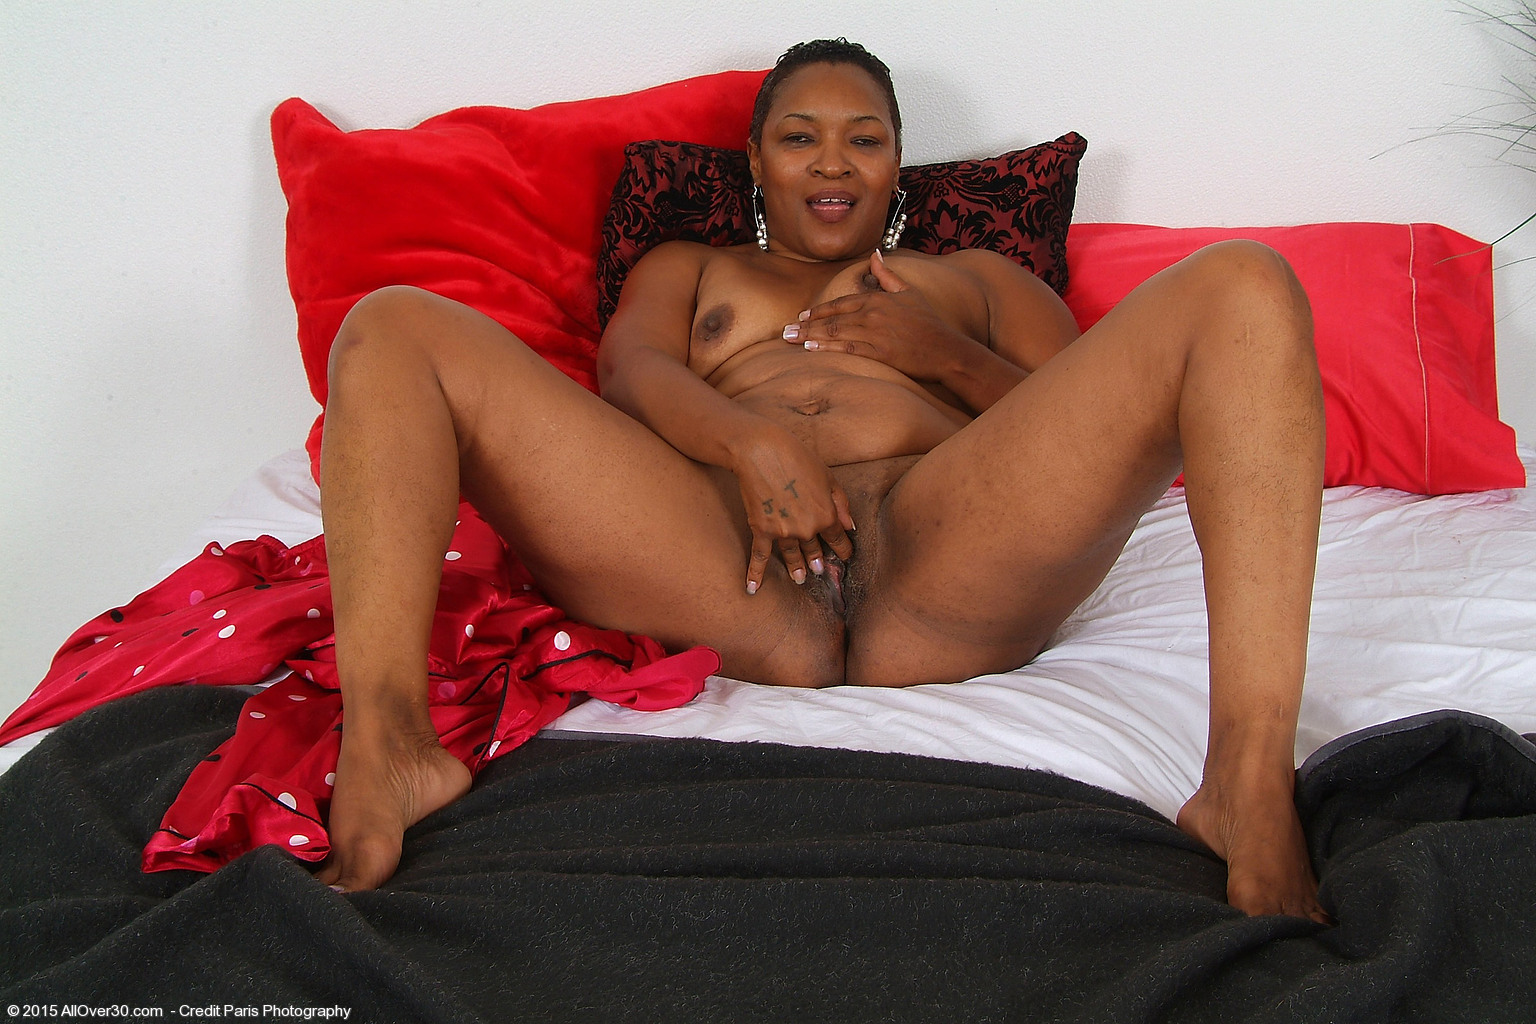 51 Year Old Portia - Exclusive MILF Pictures from AllOver30.com